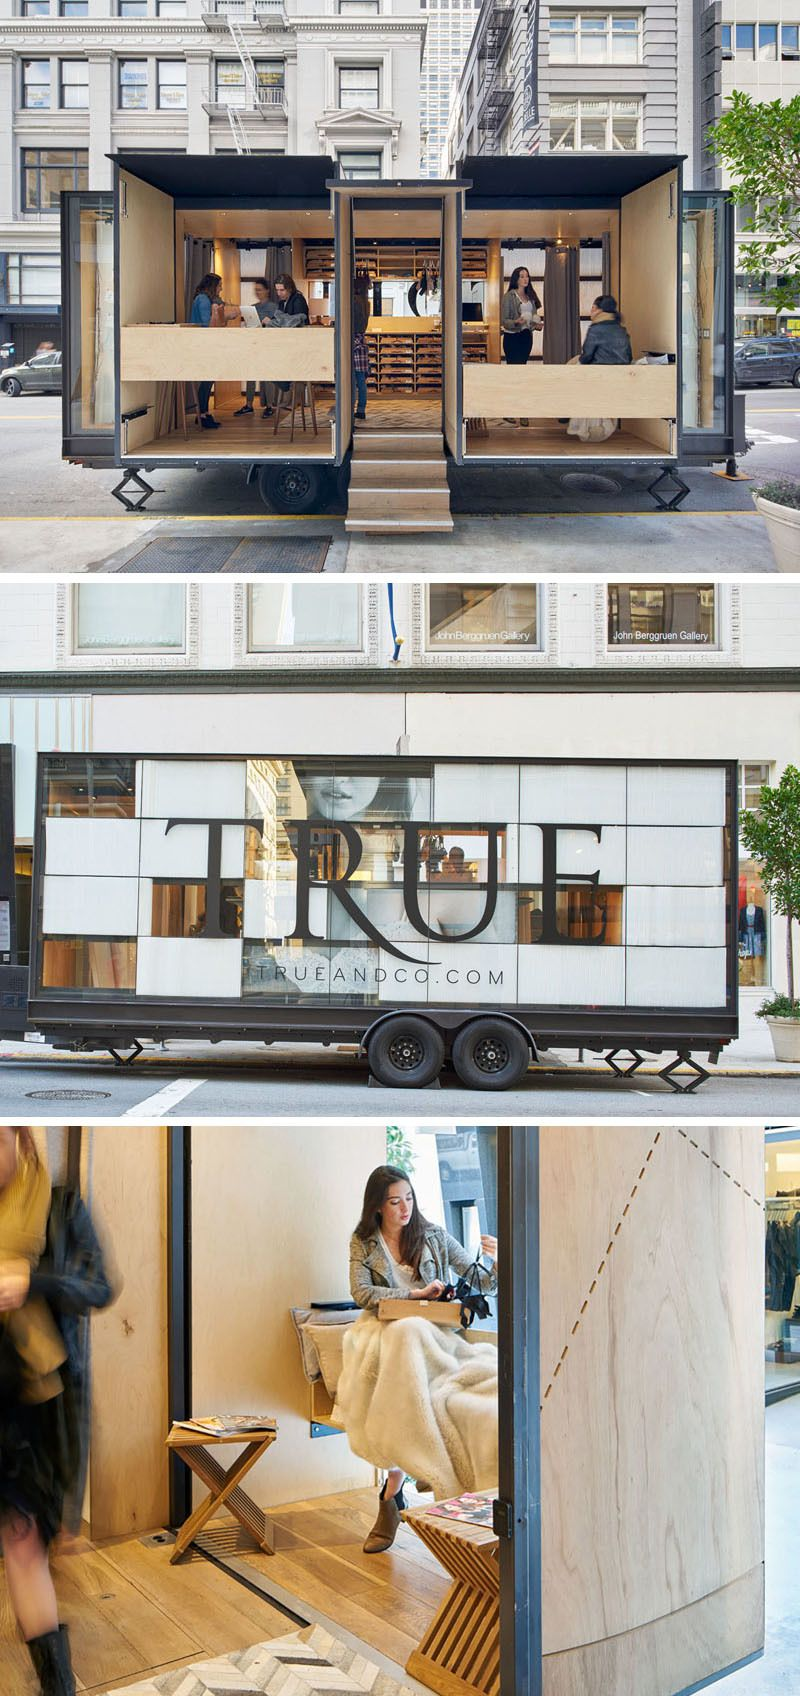 mobile office architects and spiegel aihara workshop collaborated to design and develop a mobile. Black Bedroom Furniture Sets. Home Design Ideas